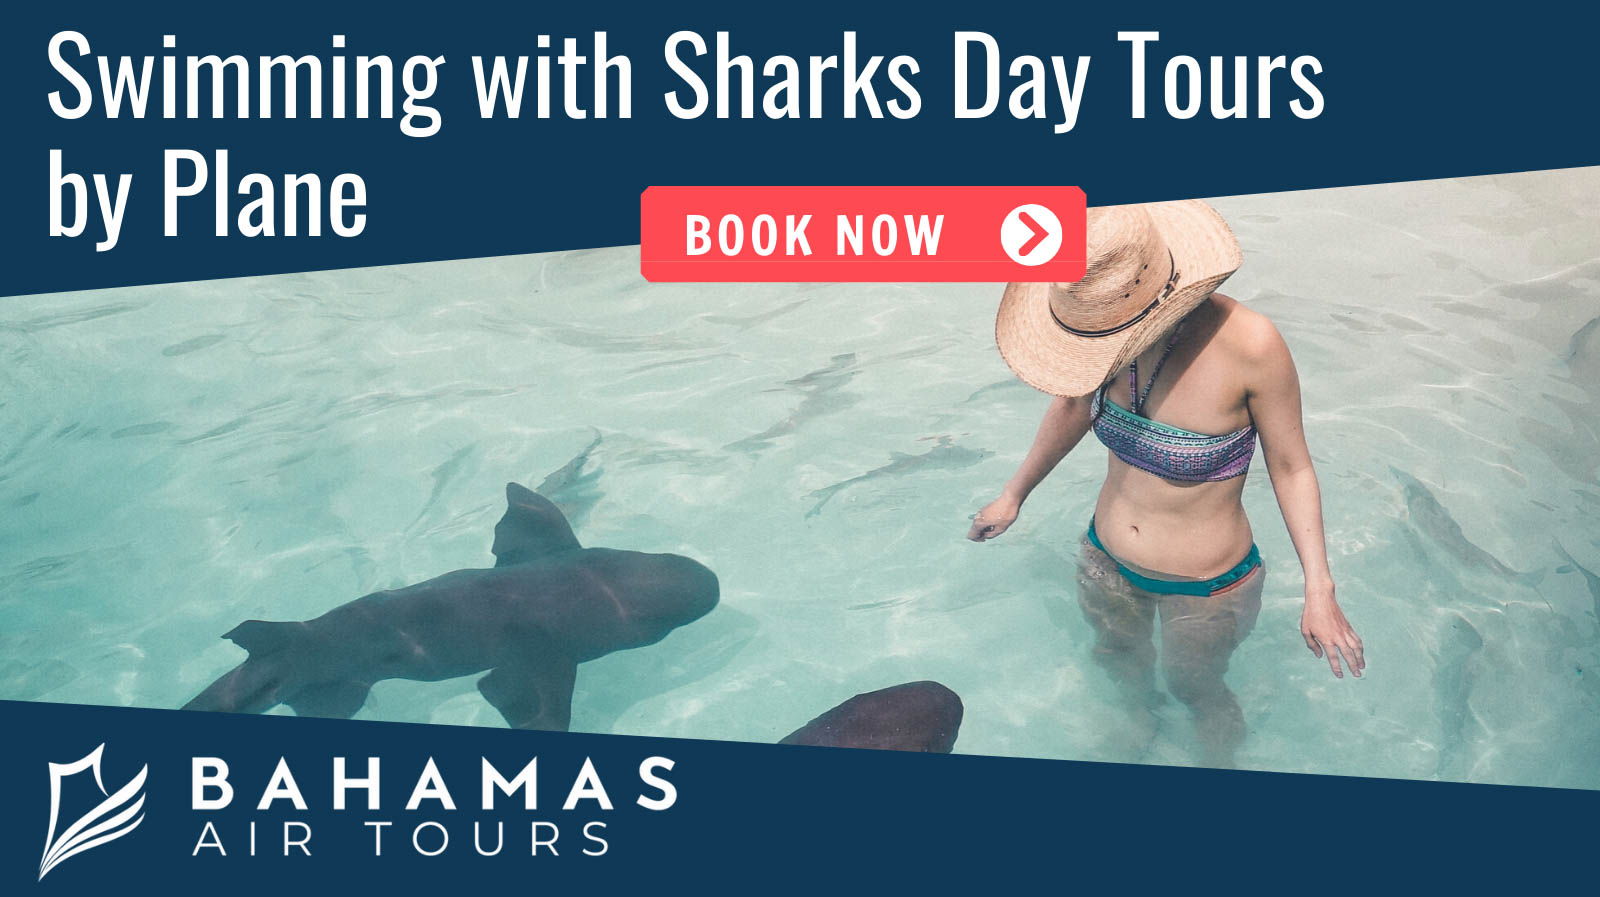 Swimming with Sharks at Bahamas Air Tours at Compass Cay on a Staniel Cay Tour of Exuma by plane. Nassau to Exuma Day Trips.